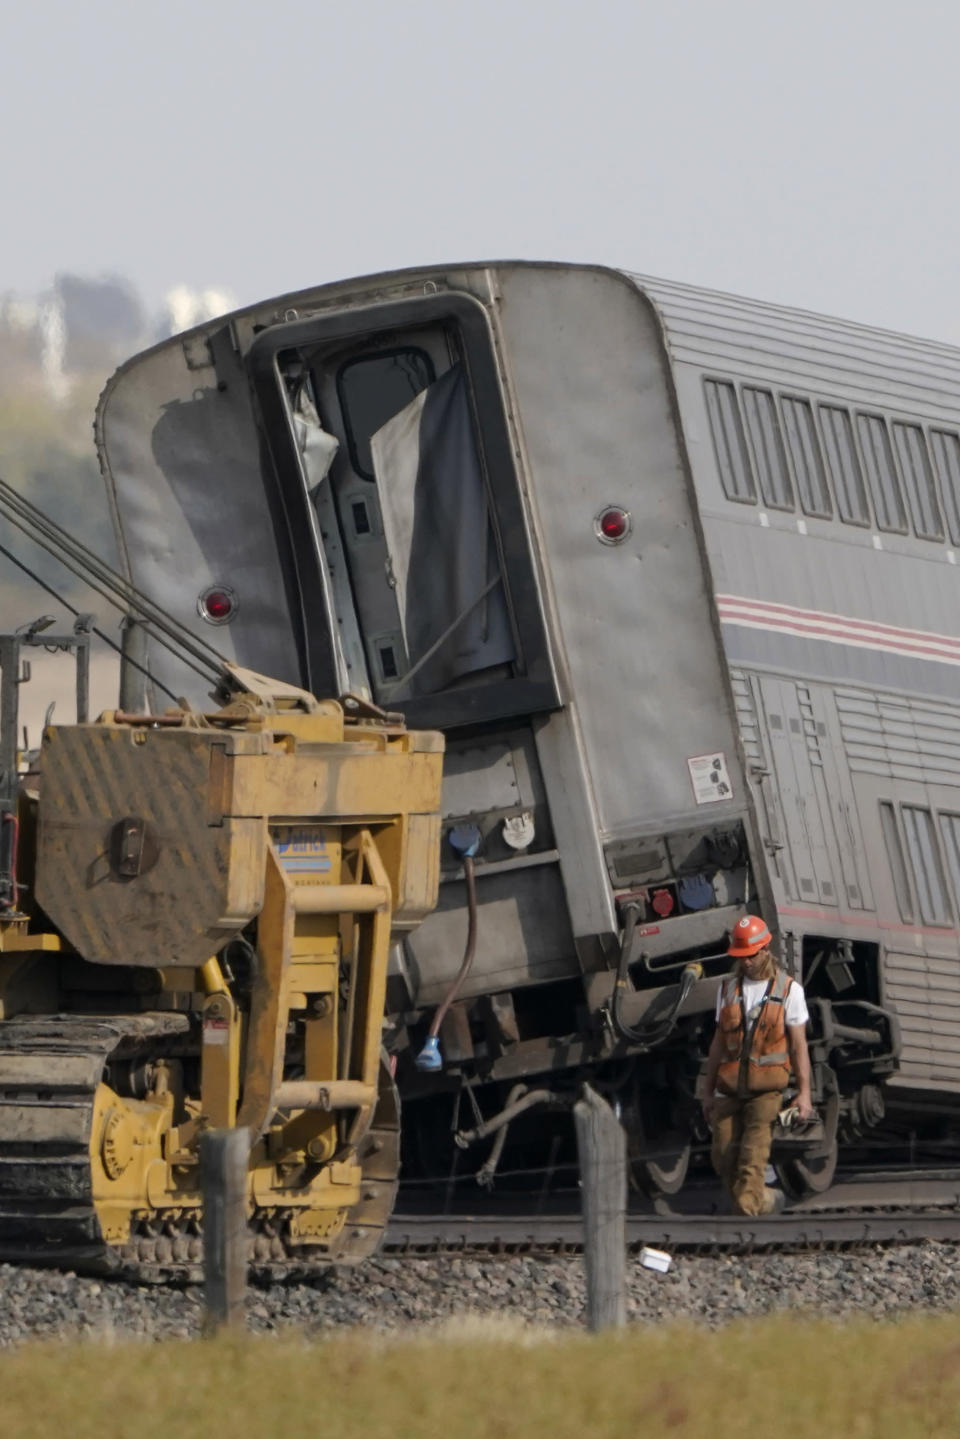 A worker walks Sunday, Sept. 26, 2021, next to a car from an Amtrak train that derailed Saturday just west of Joplin, Mont. The westbound Empire Builder was en route to Seattle from Chicago, with two locomotives and 10 cars. (AP Photo/Ted S. Warren)